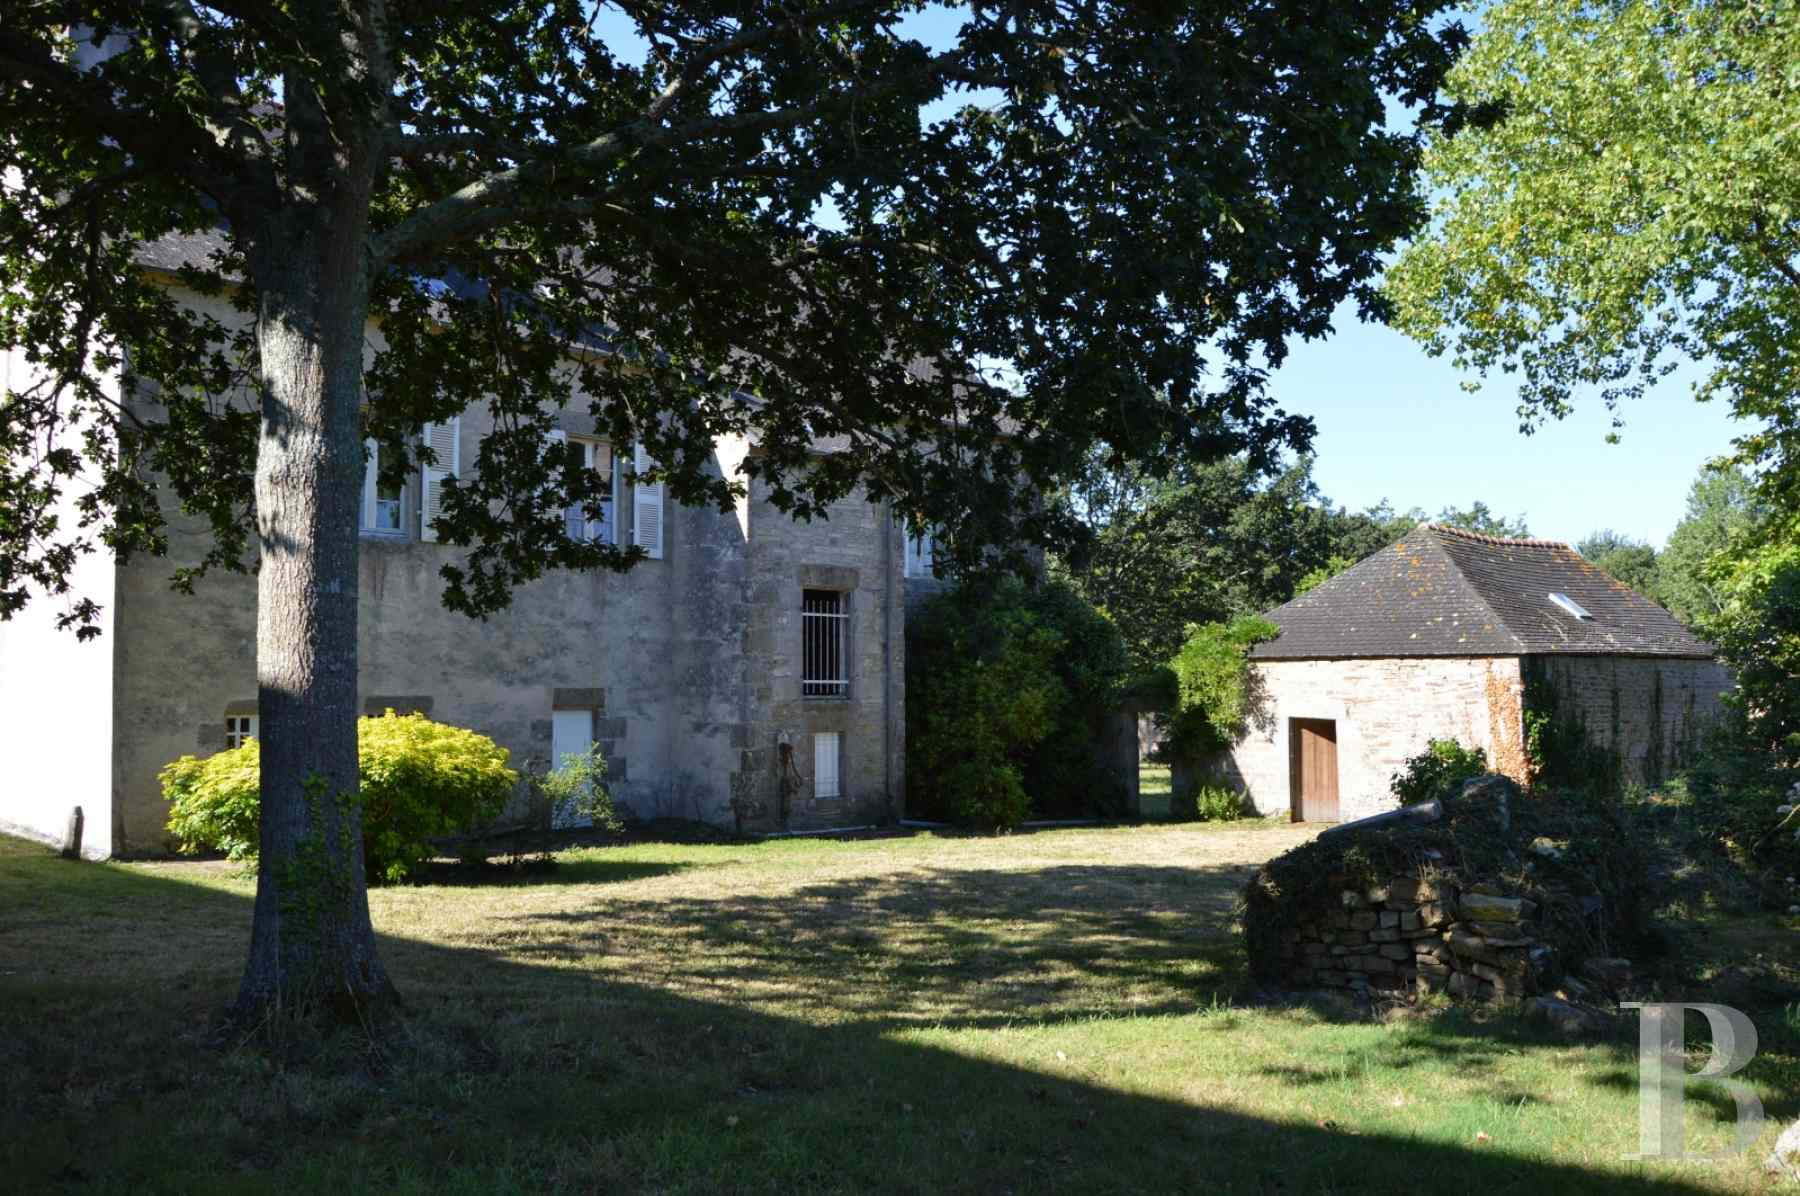 France mansions for sale brittany finistere property - 8 zoom